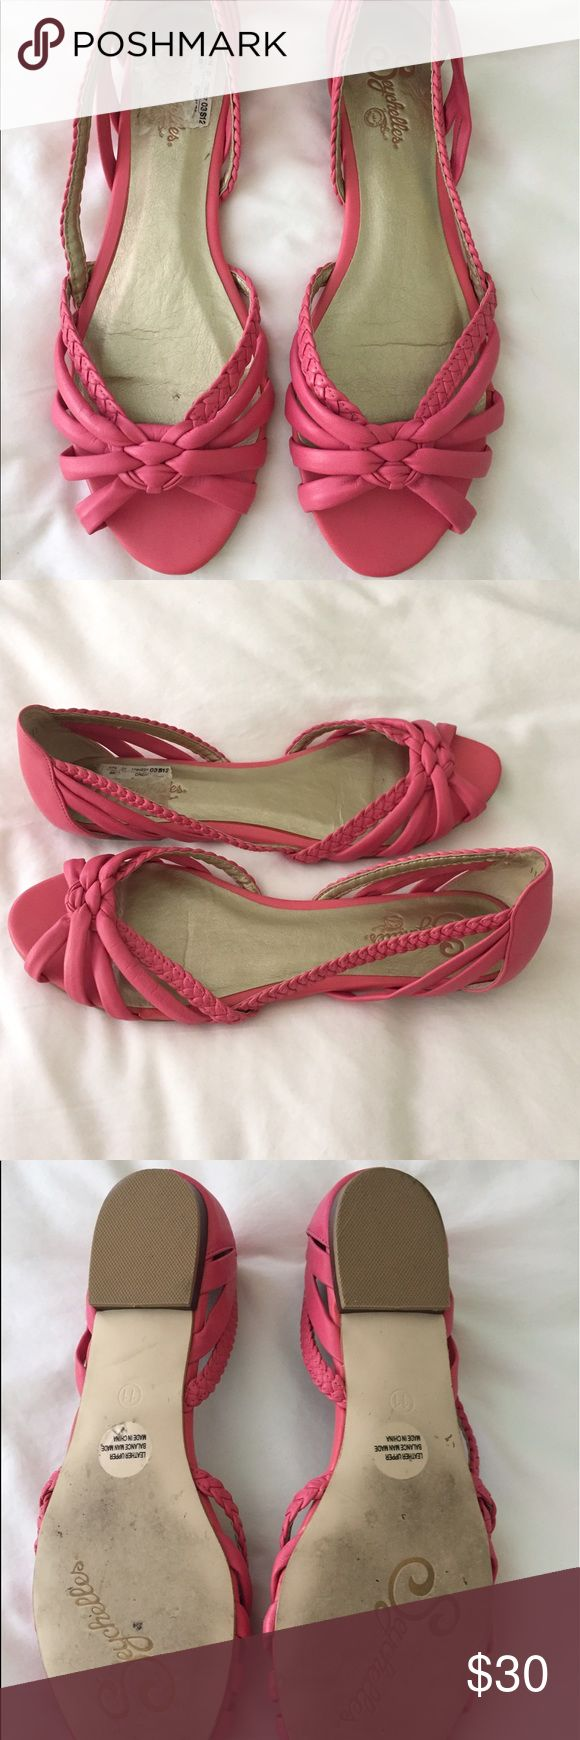 Seychelles Pink braided peep toe flat Beautiful bright pink (almost coral pink) Seychelles flat. Peep toe. NWOT. Never worn. Part of tag stuck to sole of shoe just from storage in closet. Leather upper. Seychelles Shoes Sandals